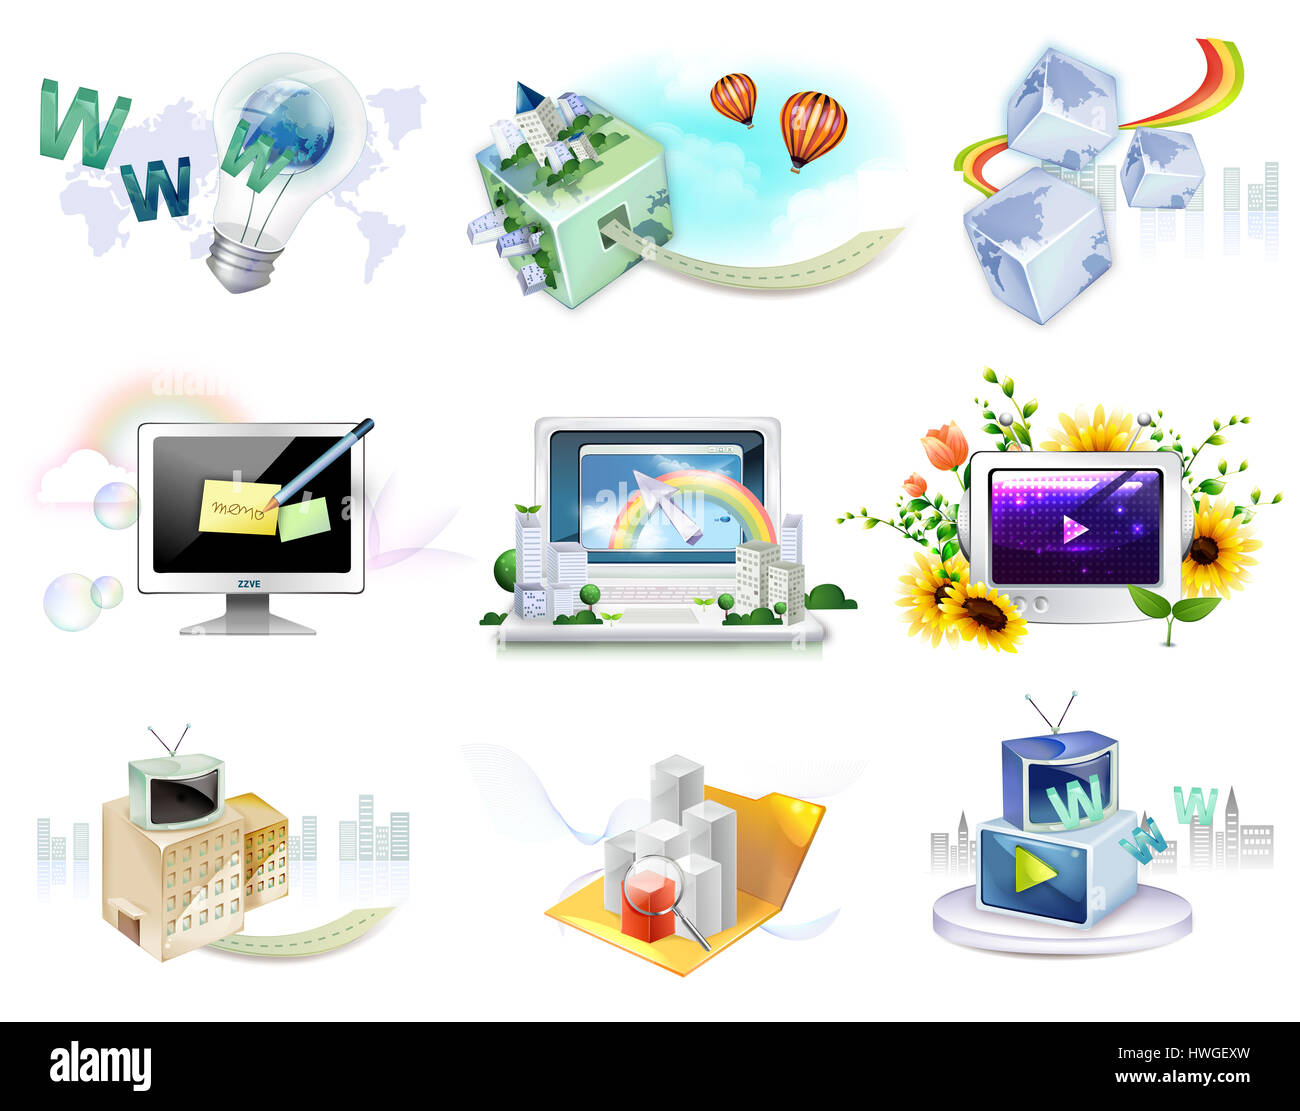 web,www,world wide web,hyper Stock Photo: 136201937 - Alamy